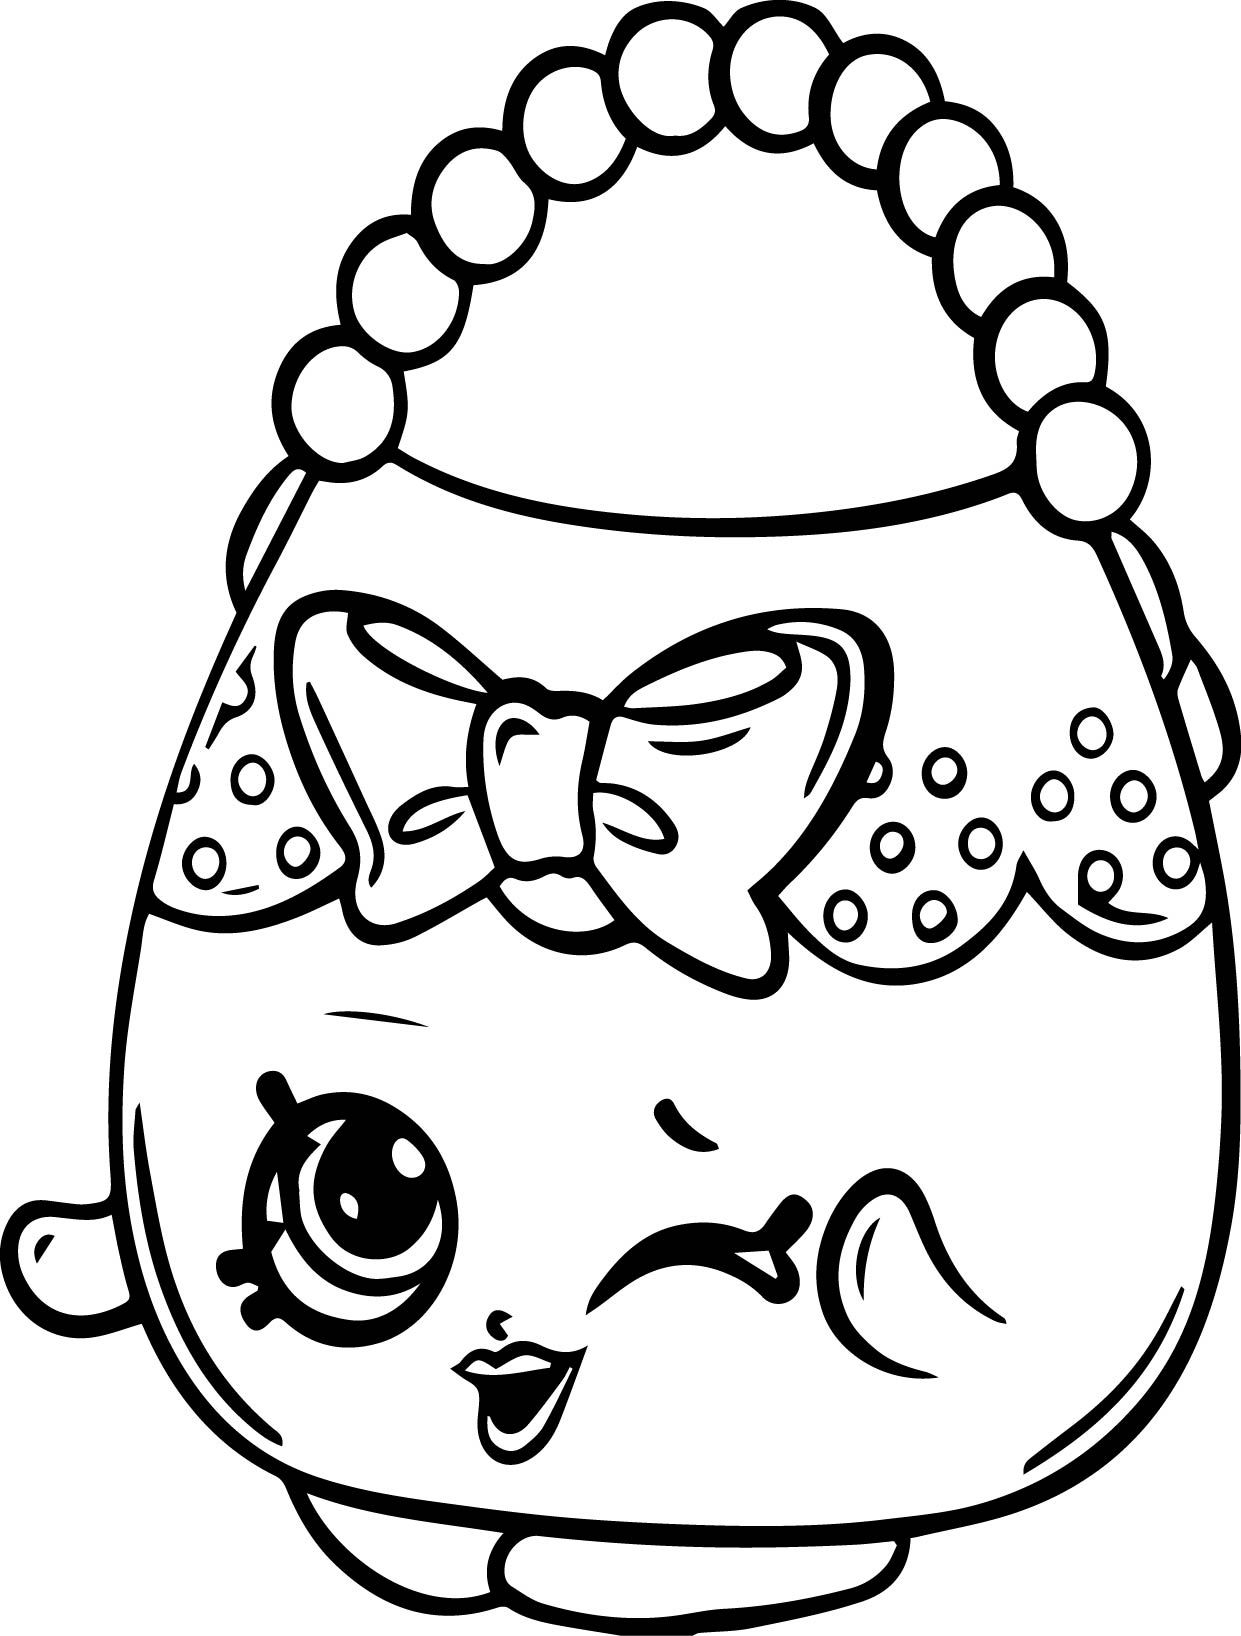 1241x1636 Cupcake Queen Coloring Pages Cupcake Queen Cupcake Printable